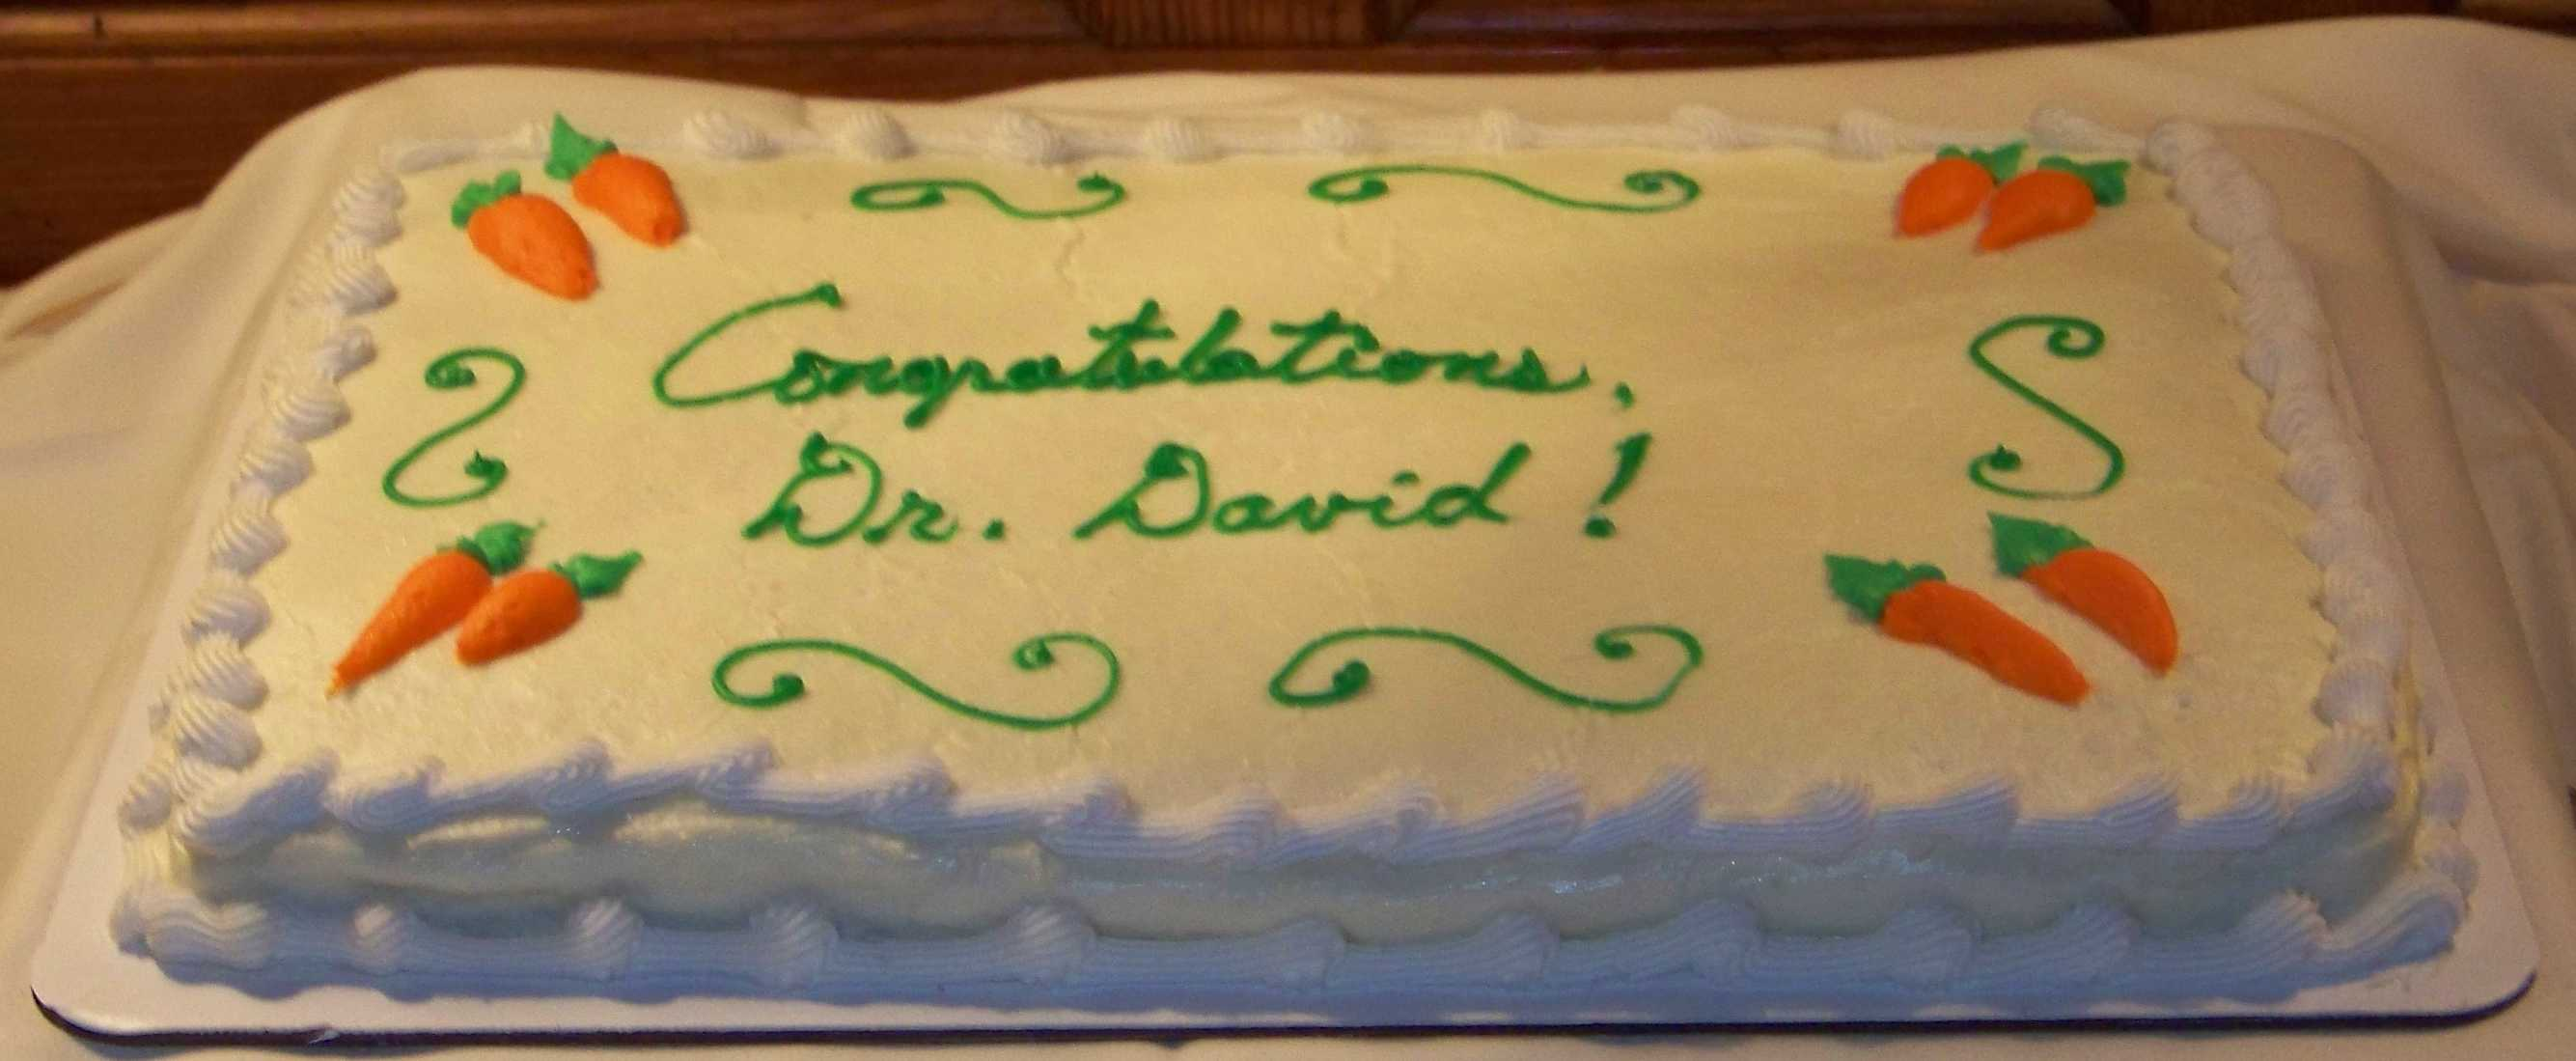 Dr. Dave Cake